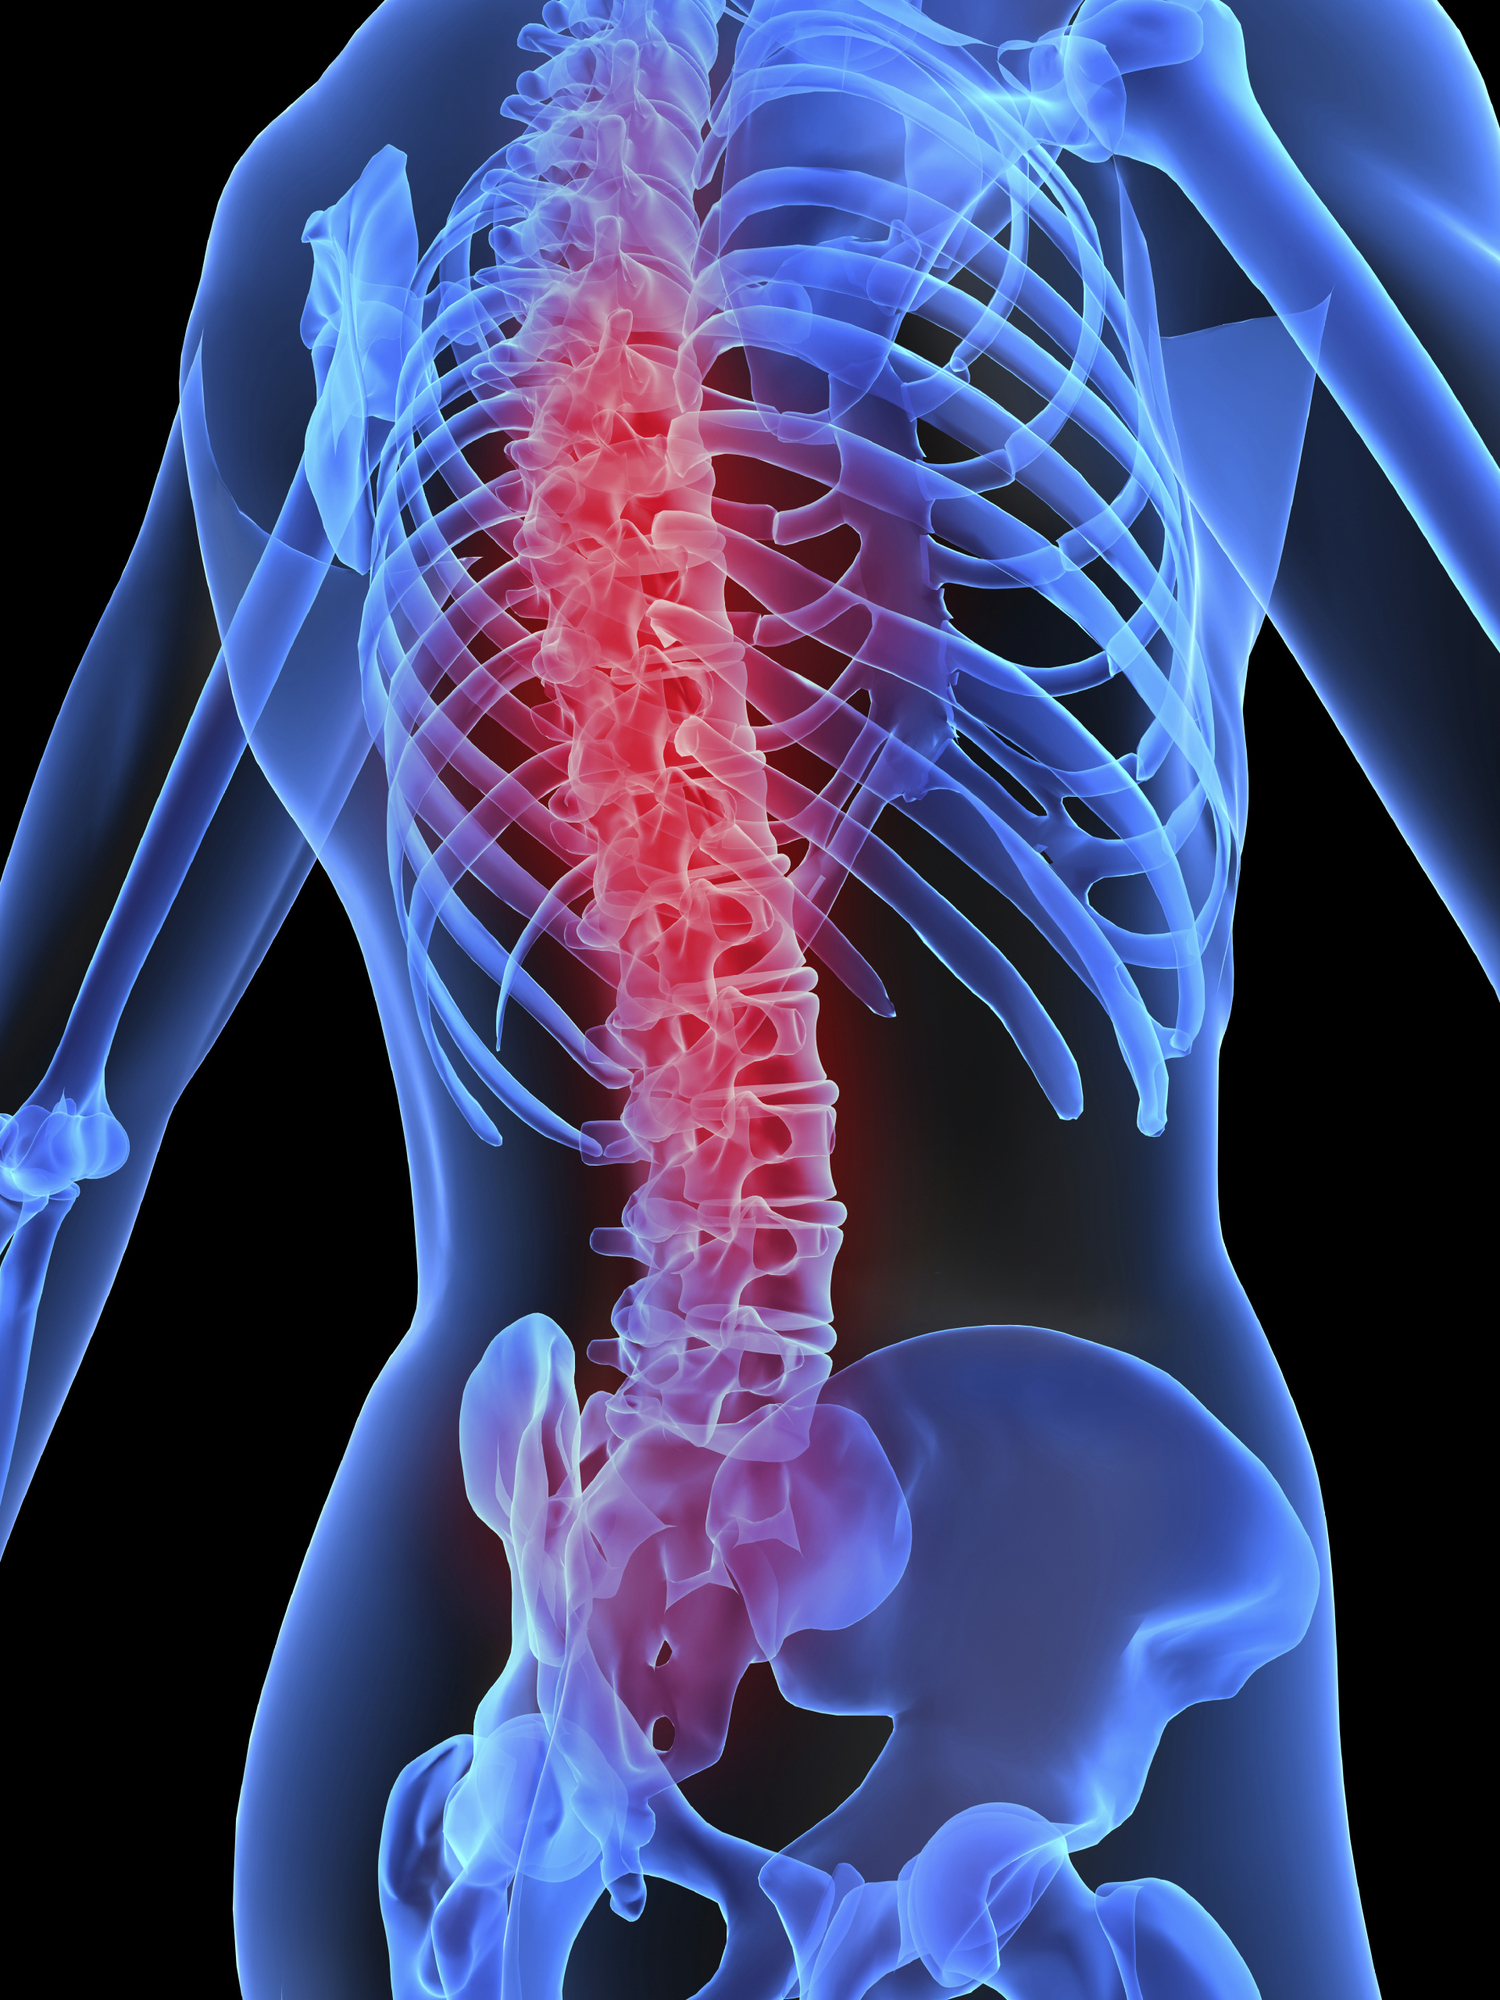 Spinal Cord Injury Fornos Law Firm Spinal Cord Injury Lawyers